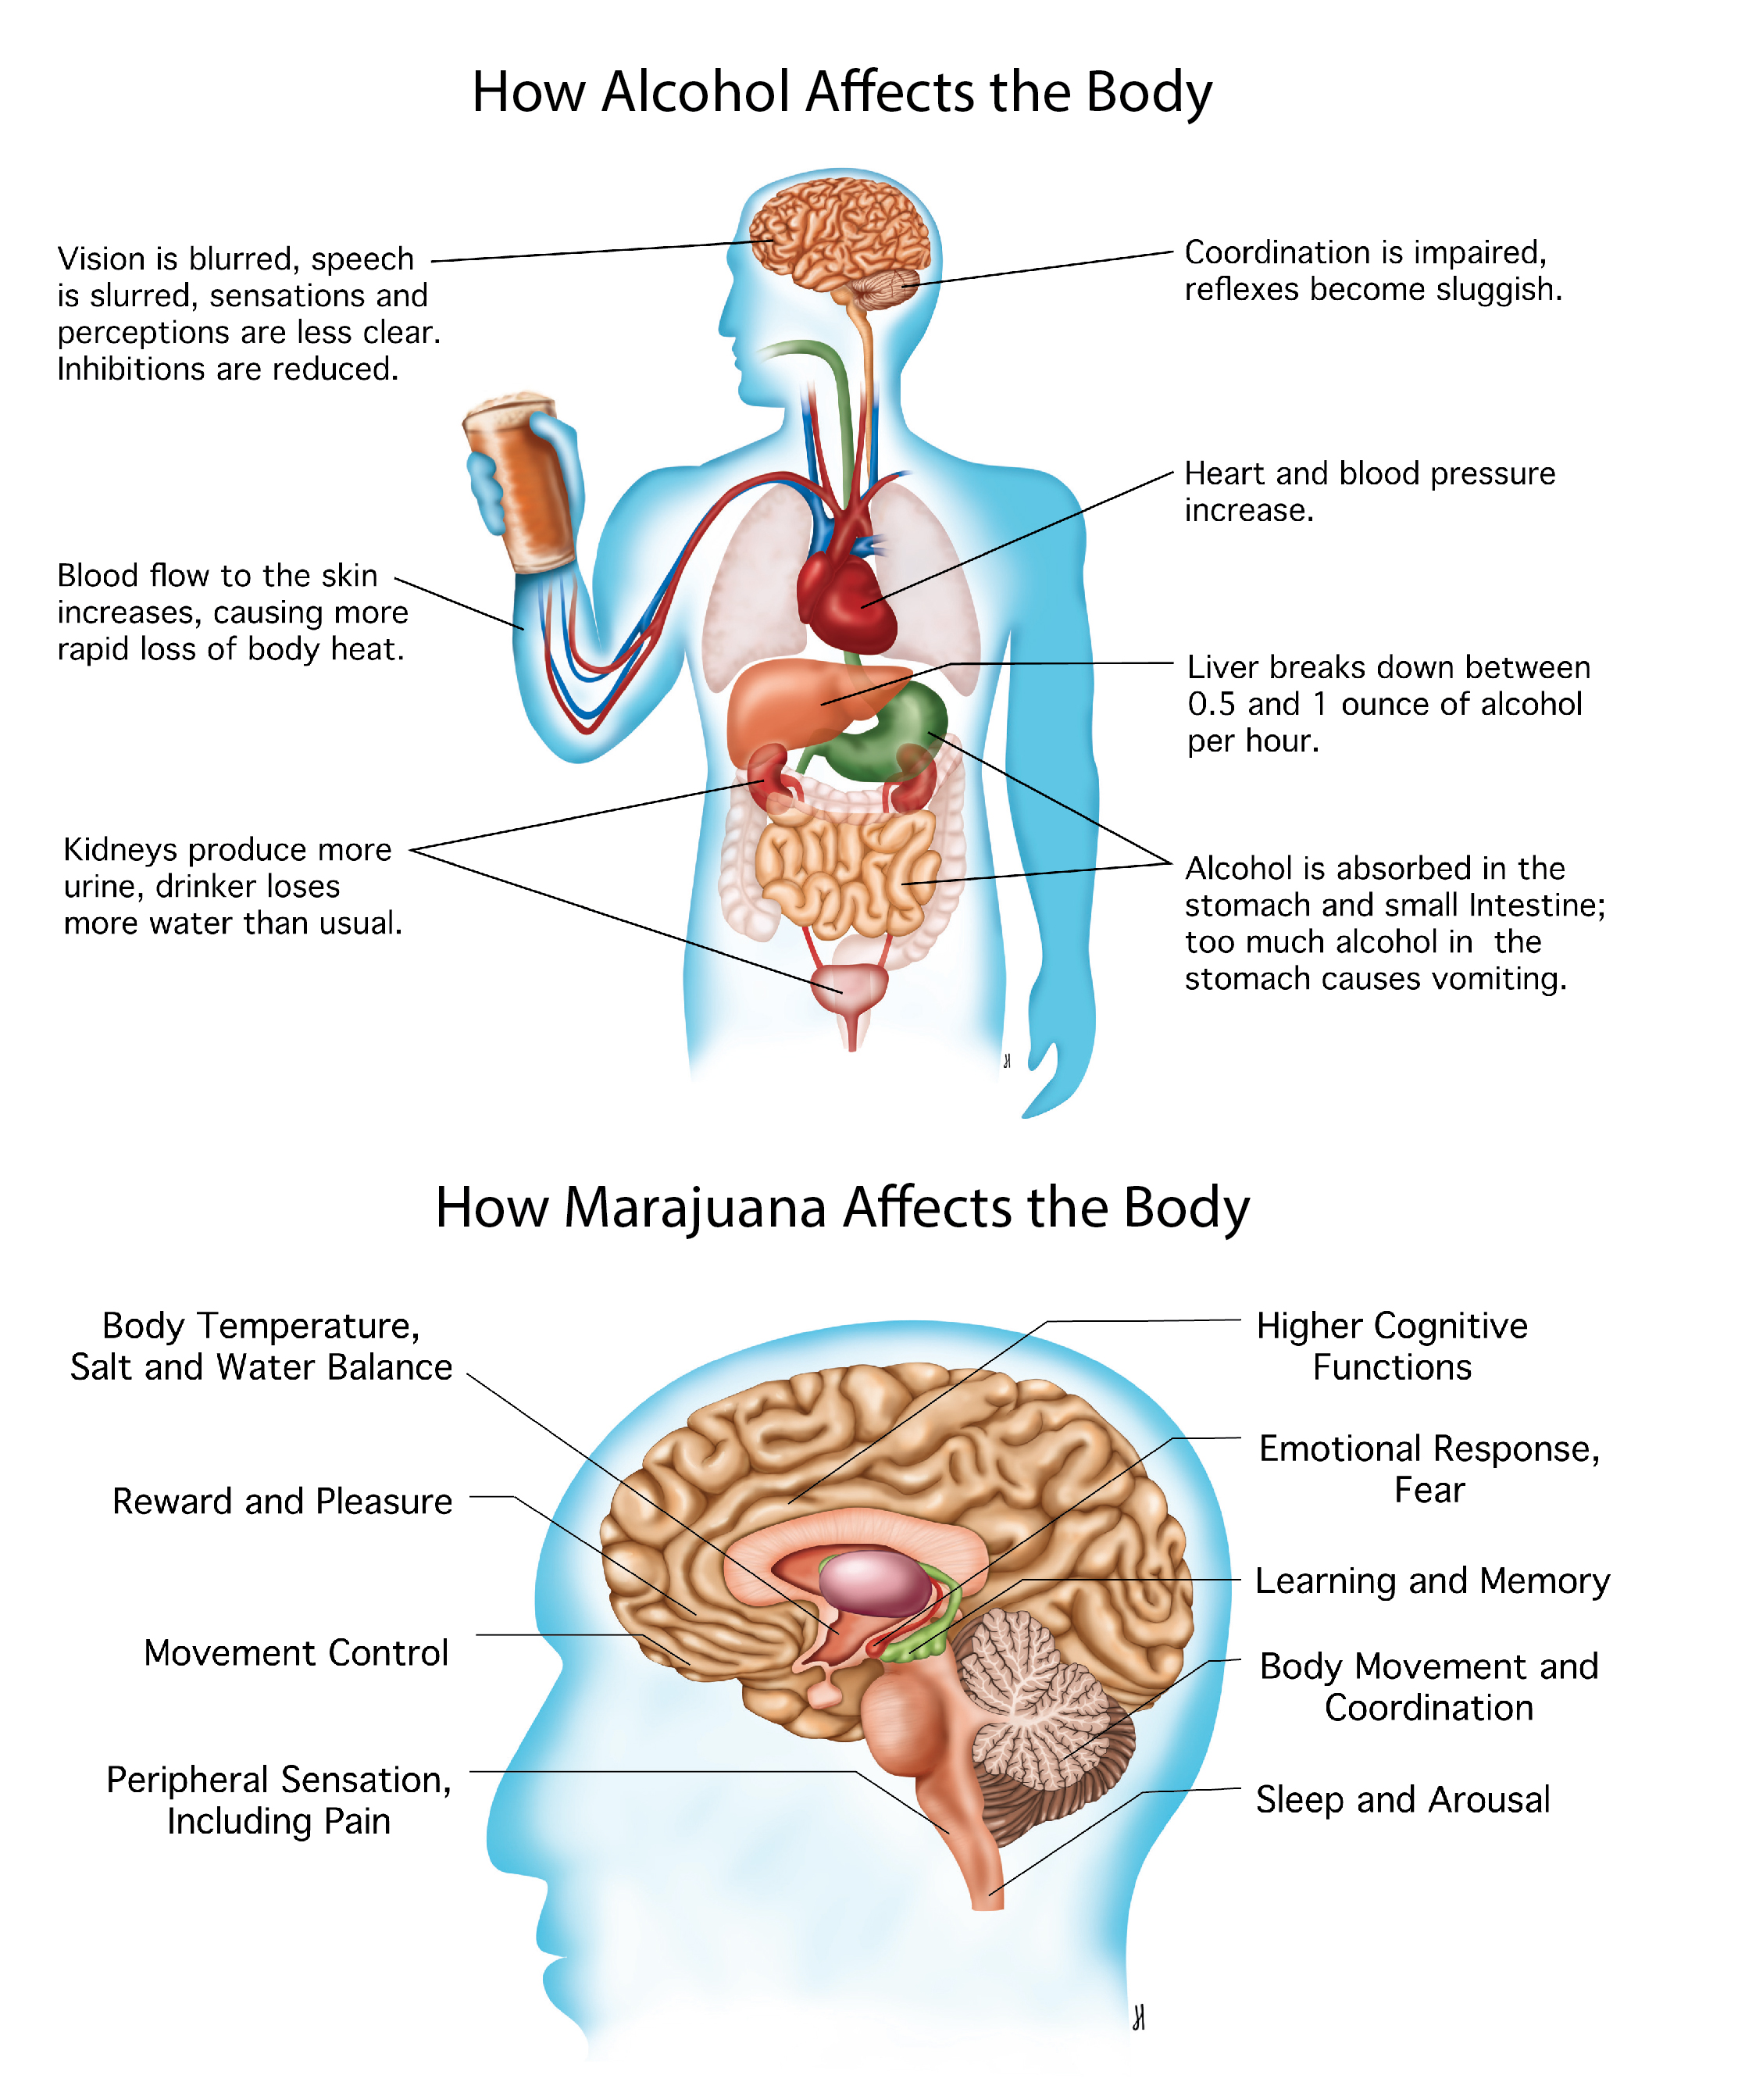 How Alcohol and Marajuana affect the body